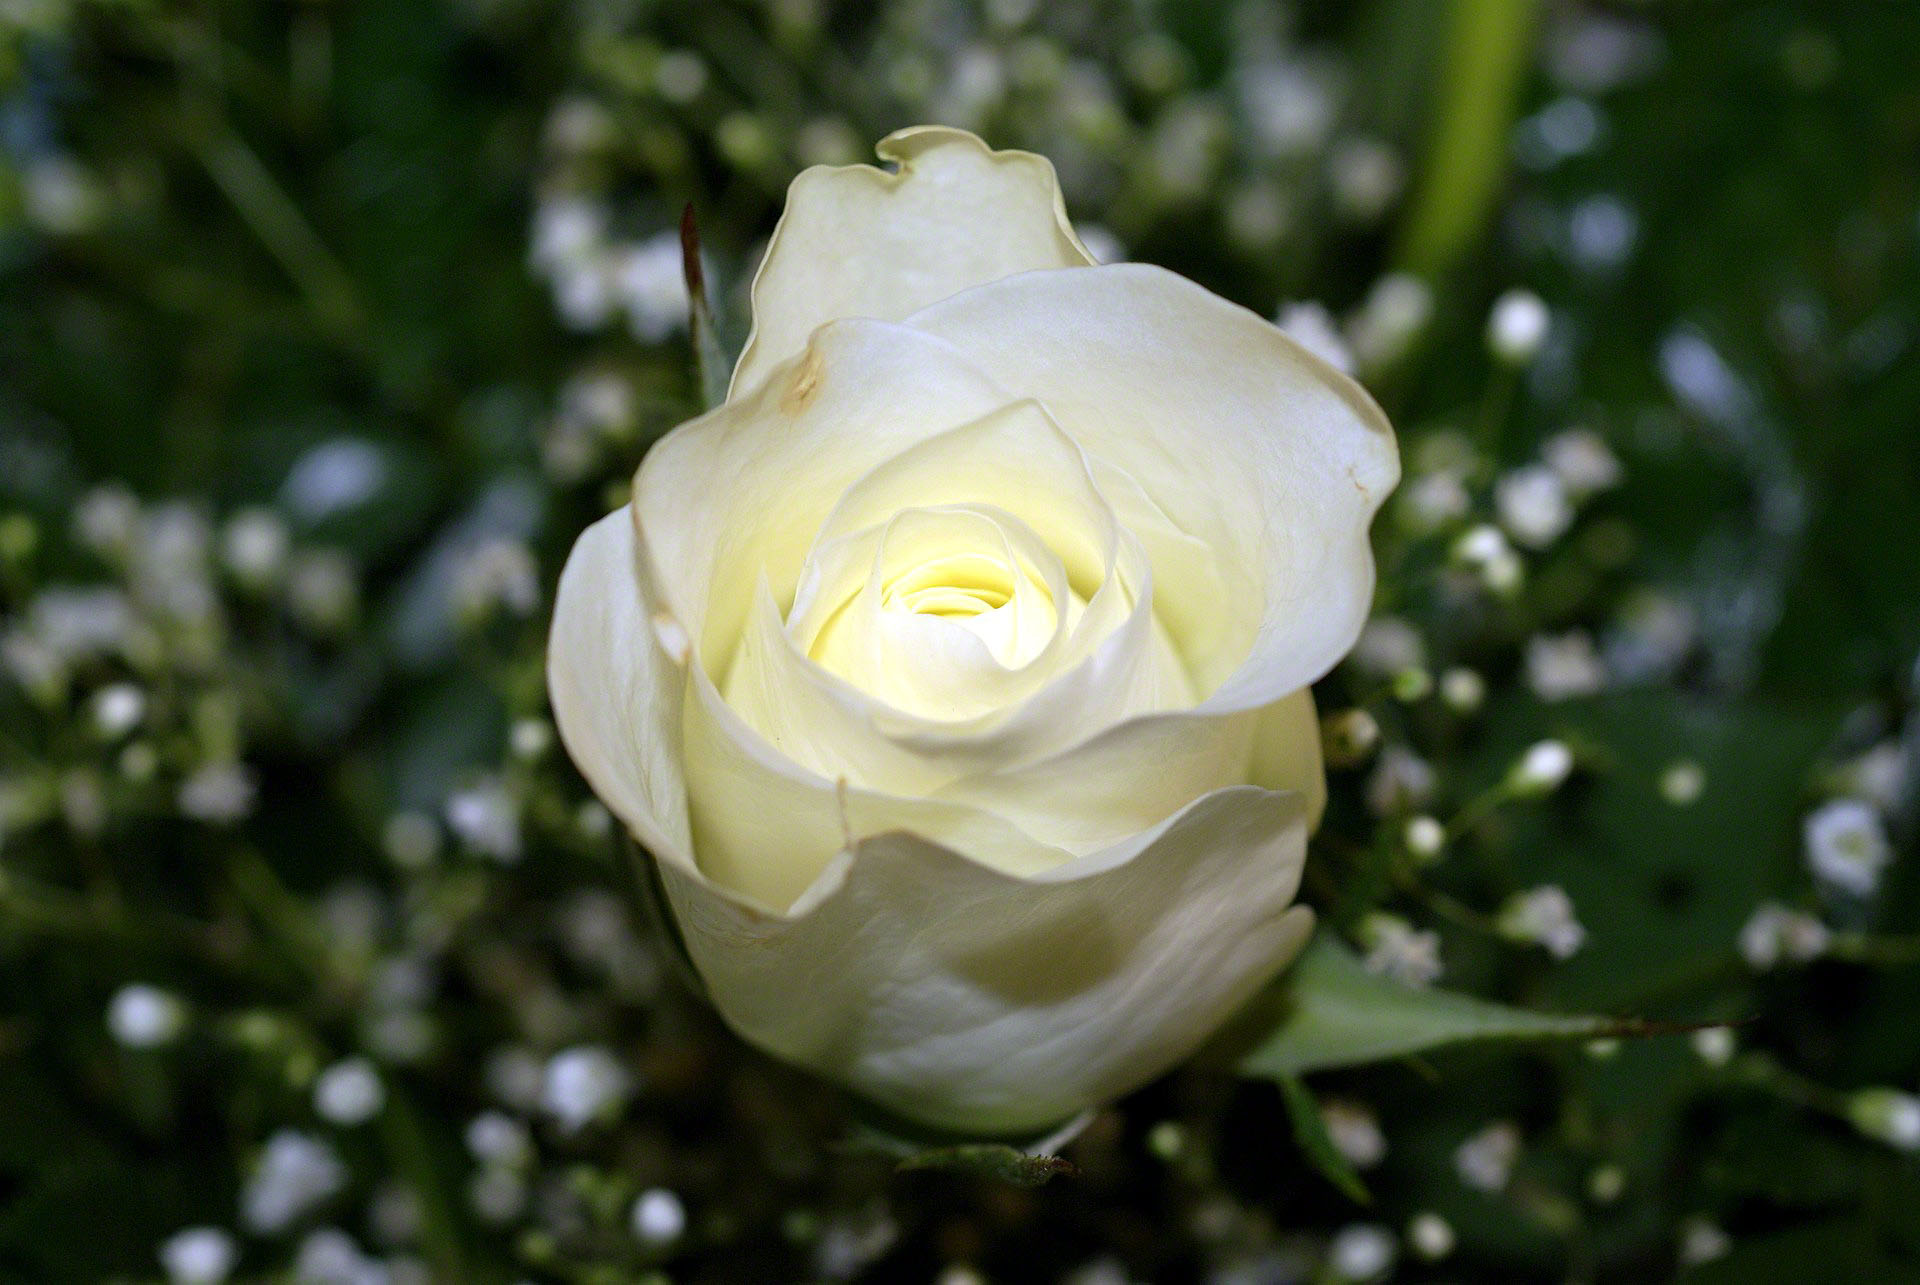 http://www.fabiovisentin.com/photography/photo/12/white-rose-bouquet-0267616.jpg